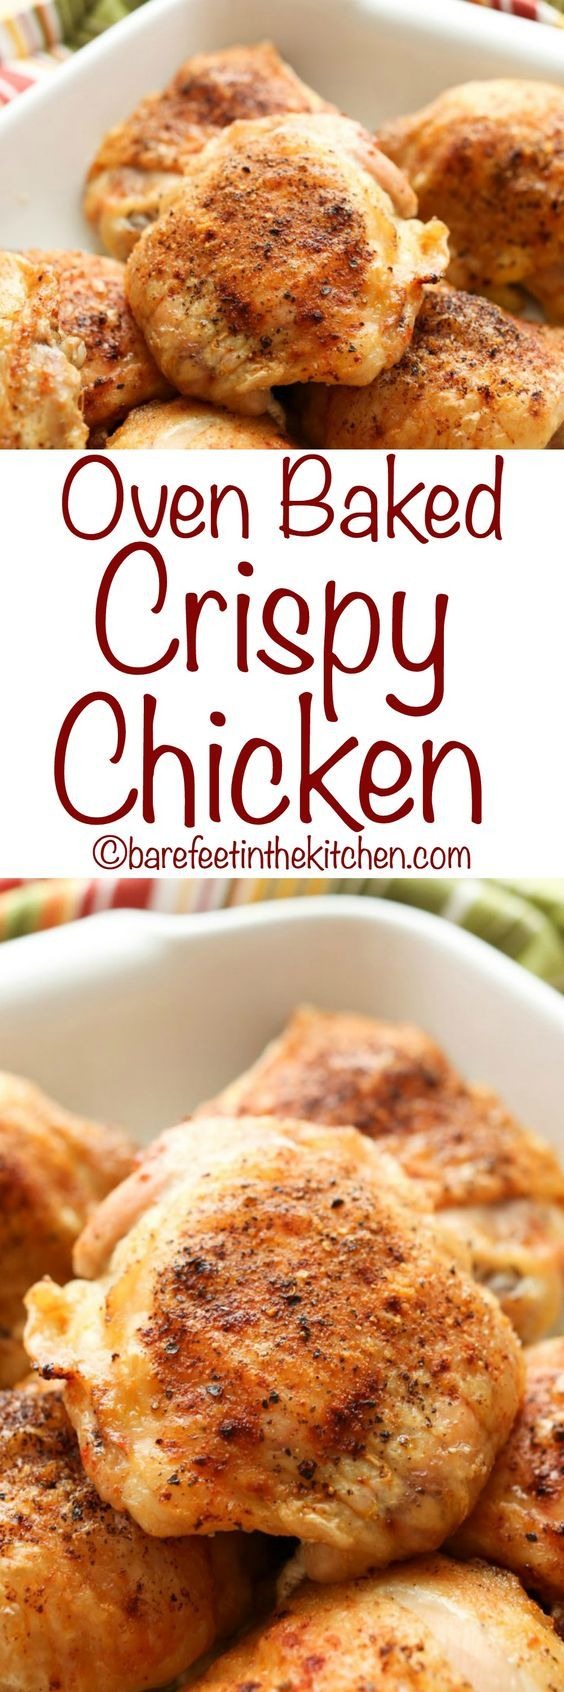 Oven Baked Crispy Chicken - with just 5 minutes effort! Get the recipe at barefeetinthekitchen.com